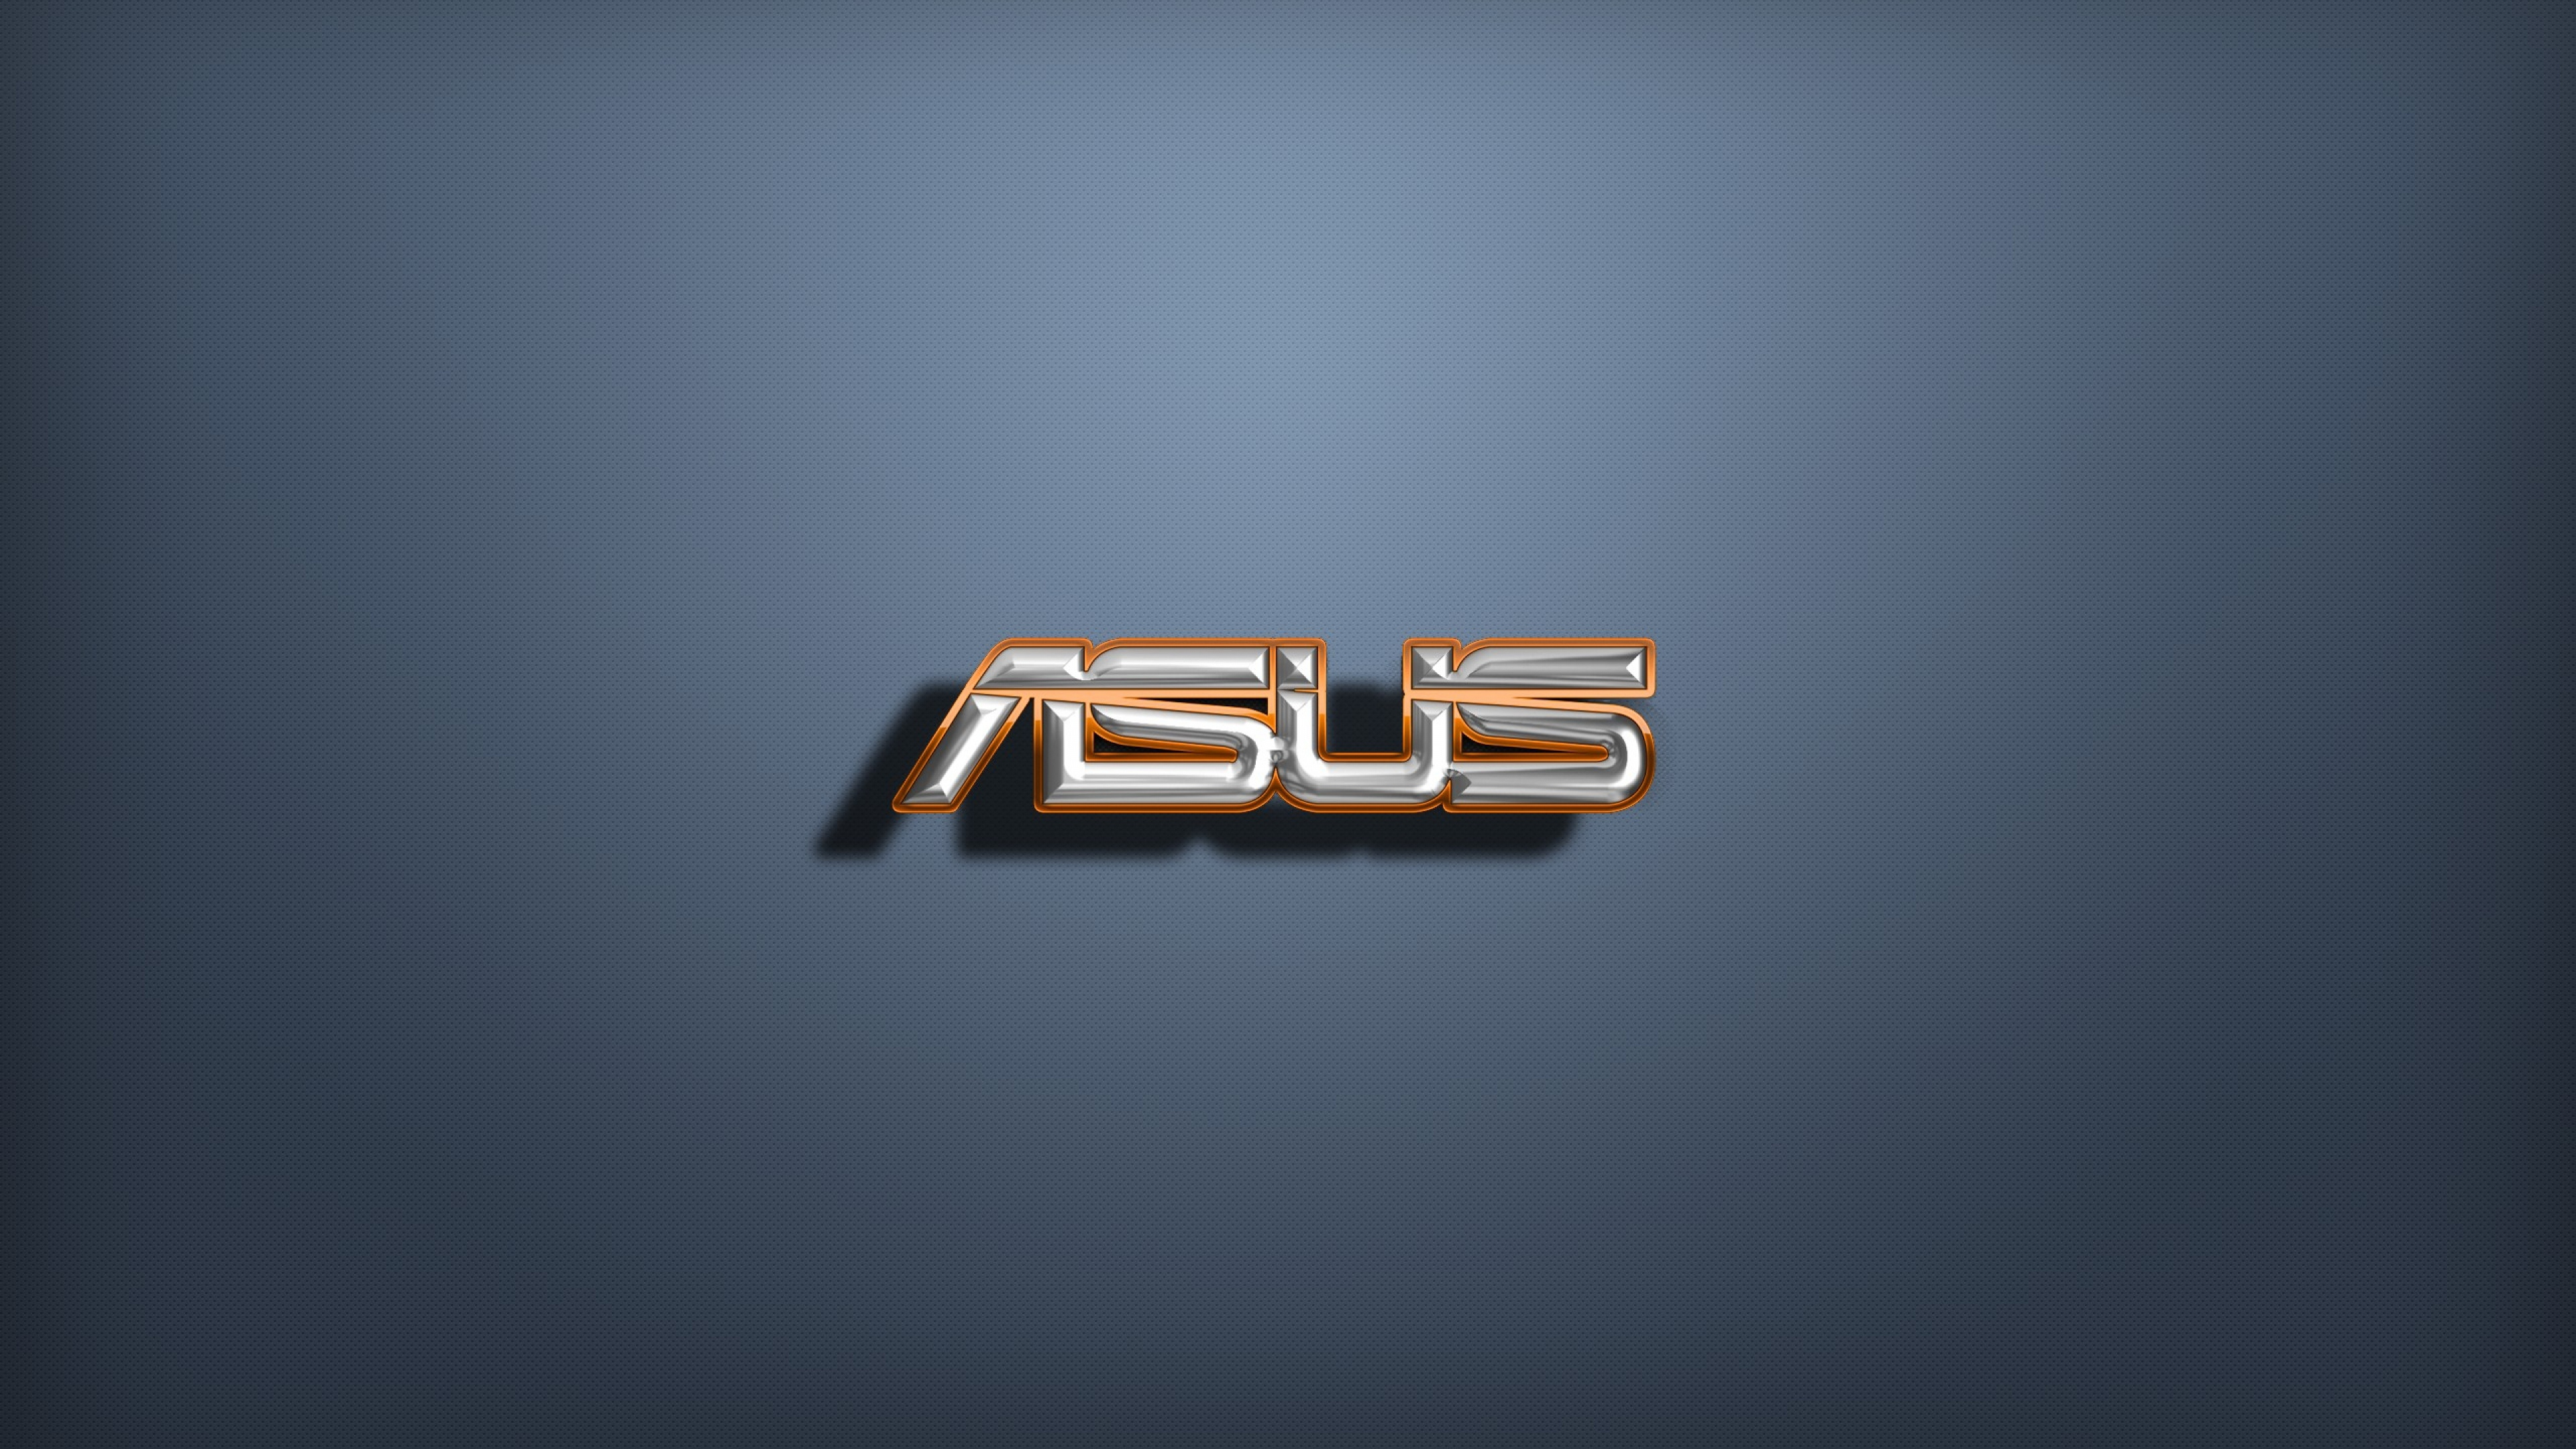 Download Wallpaper 3840x2160 Asus Minimalism Technology 4K Ultra HD 3840x2160